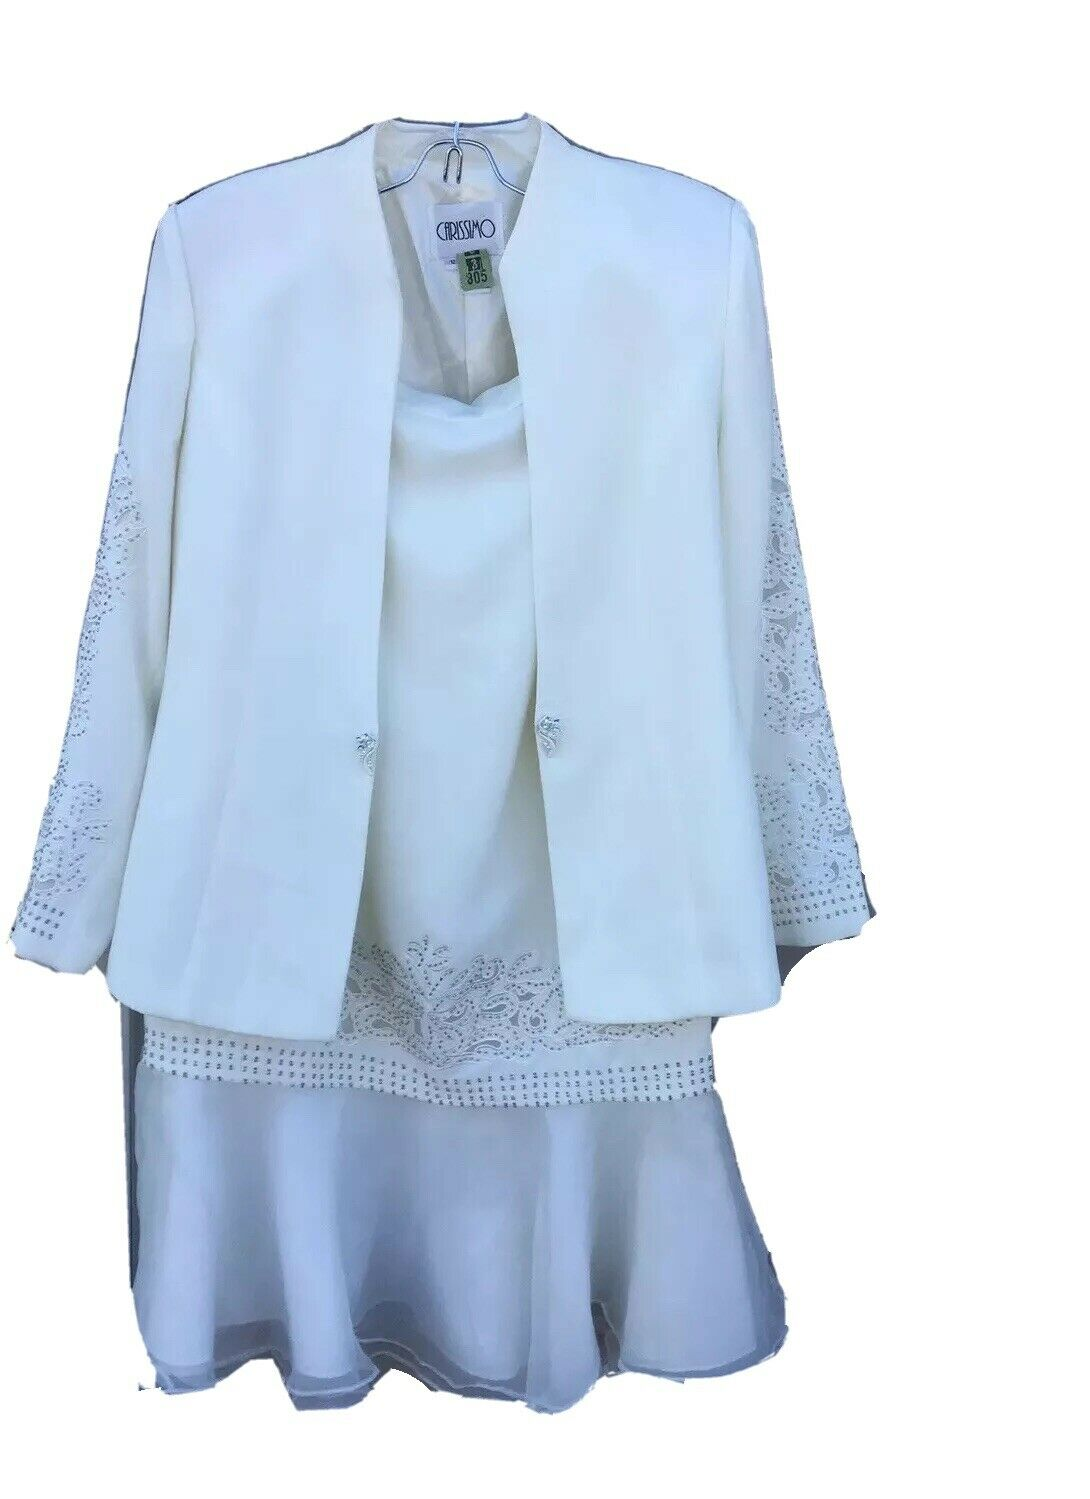 Carissimo White Embellished Beaded Formal/ Special Occasion Skirt Suit Size 12